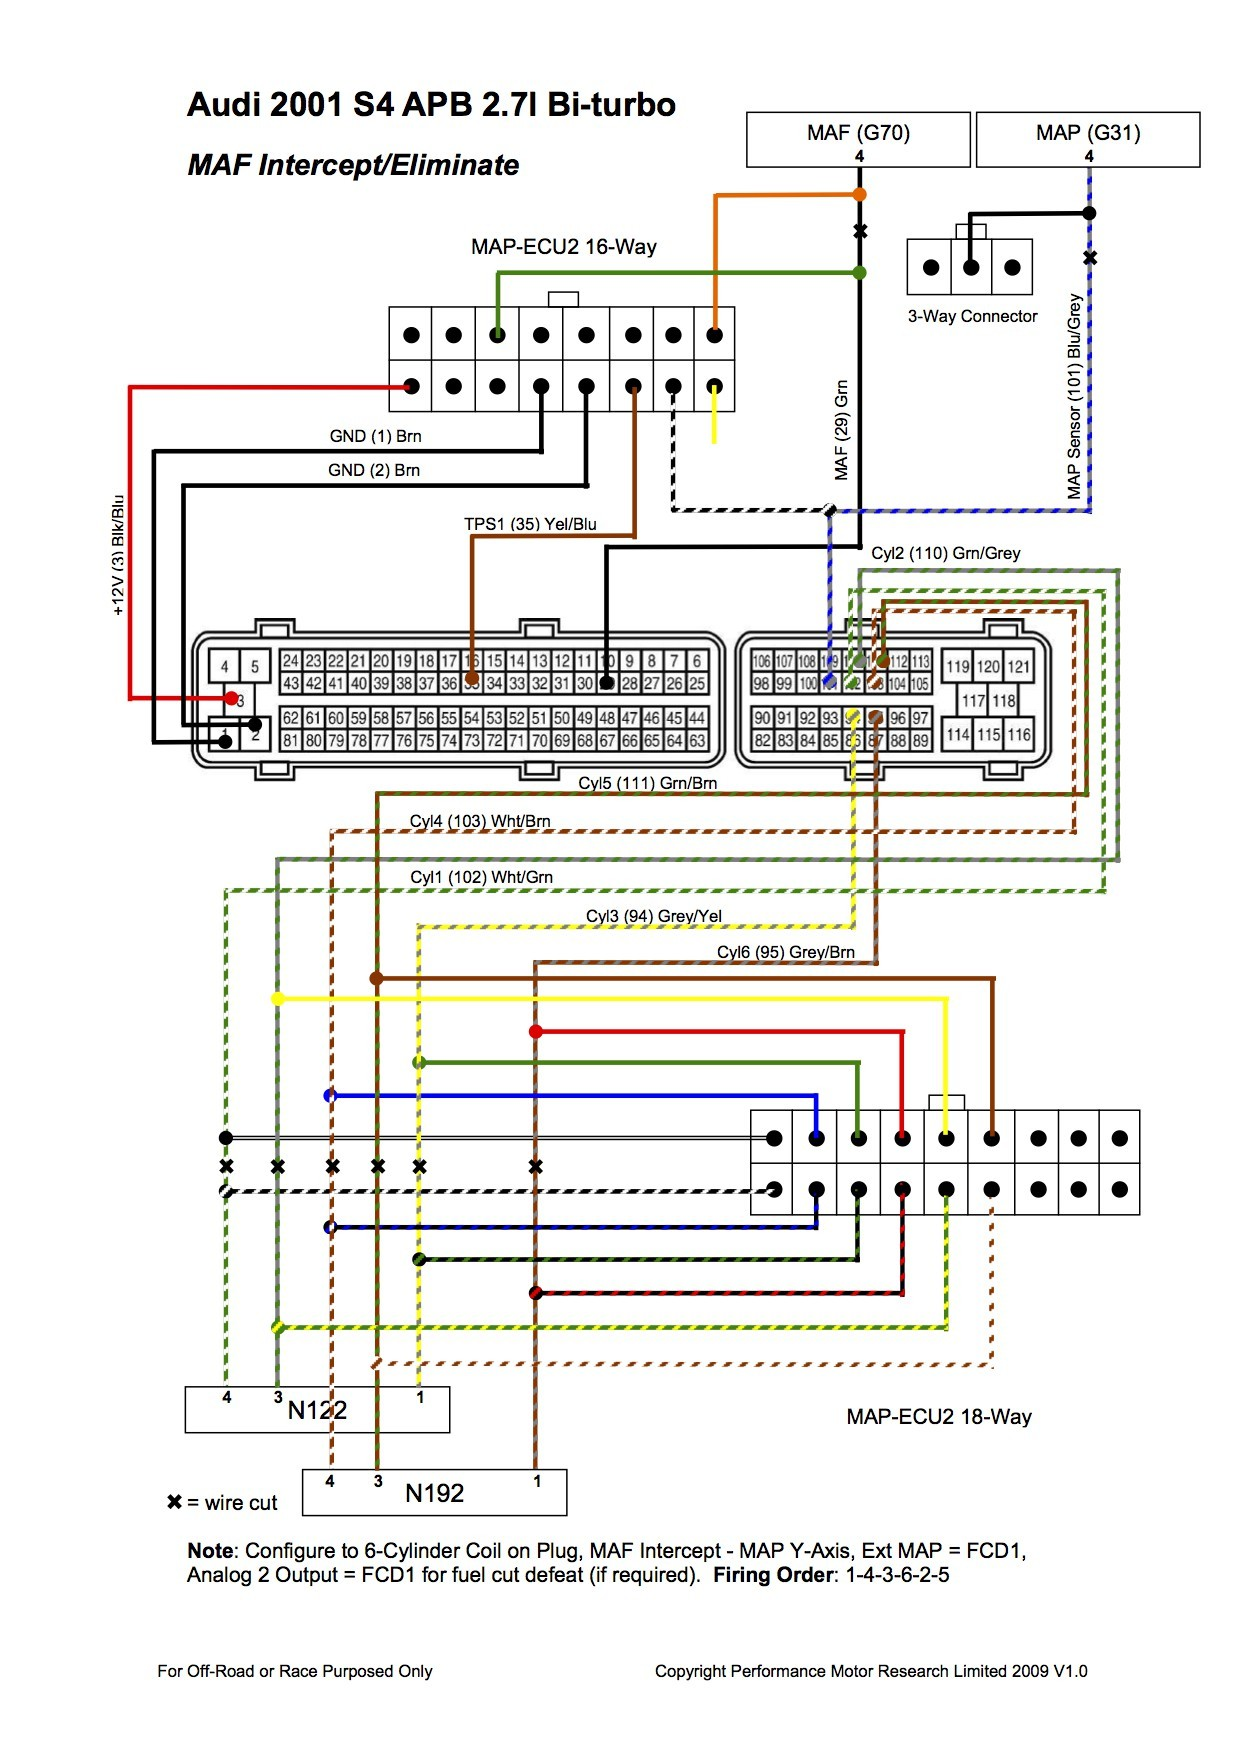 Kdc Wiring Diagram on kenwood kdc 135 wiring diagram, kenwood harness diagram, kenwood cd receiver wire diagram, kdc 148 radio,